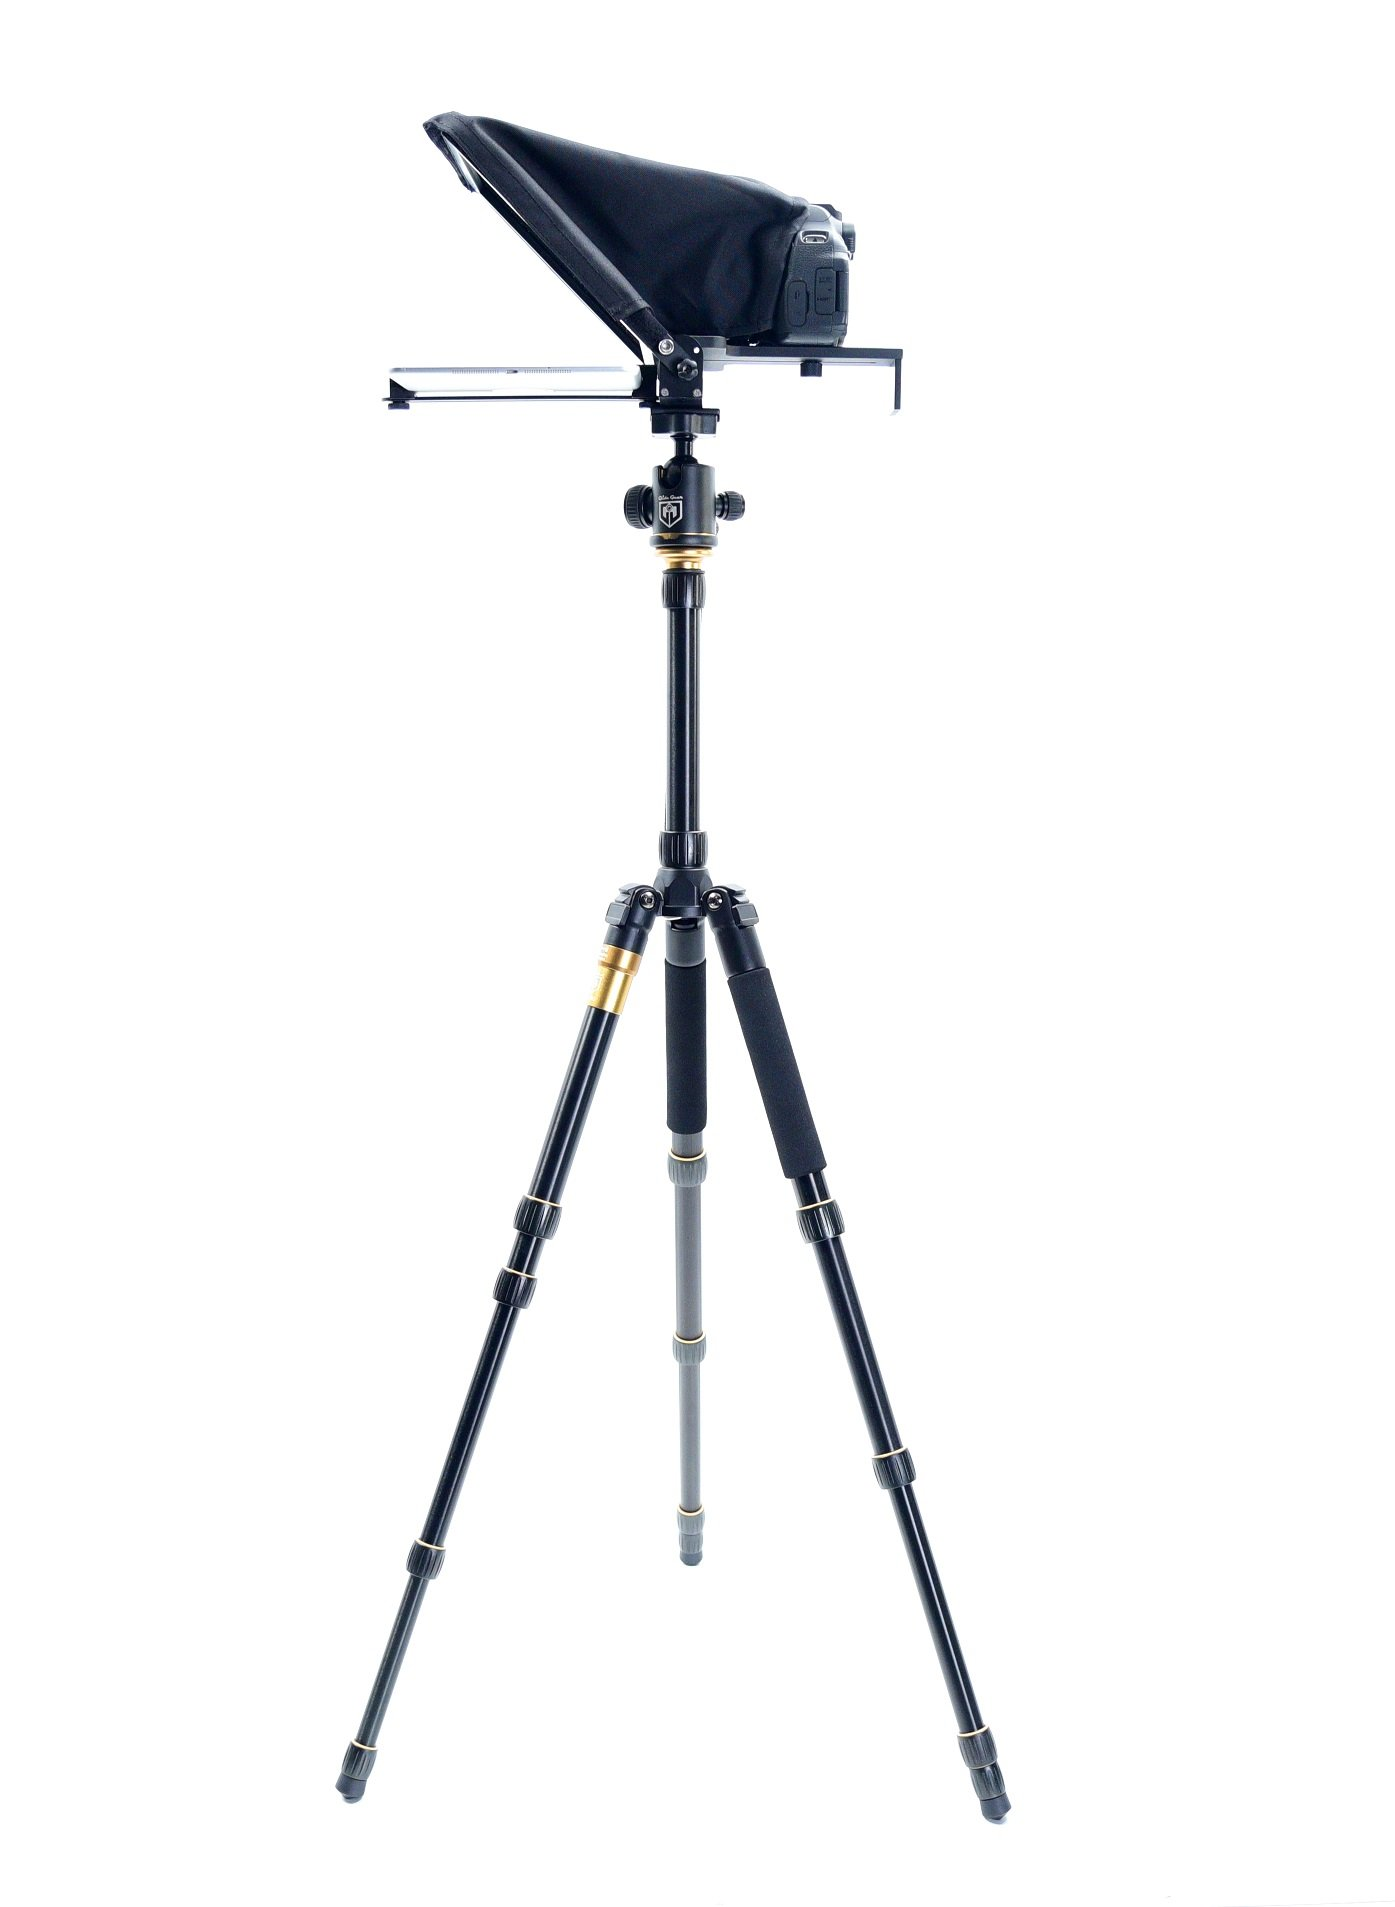 Glide Gear Small Camera Smartphone iPad Tablet Teleprompter & Tripod Package by Glide Gear